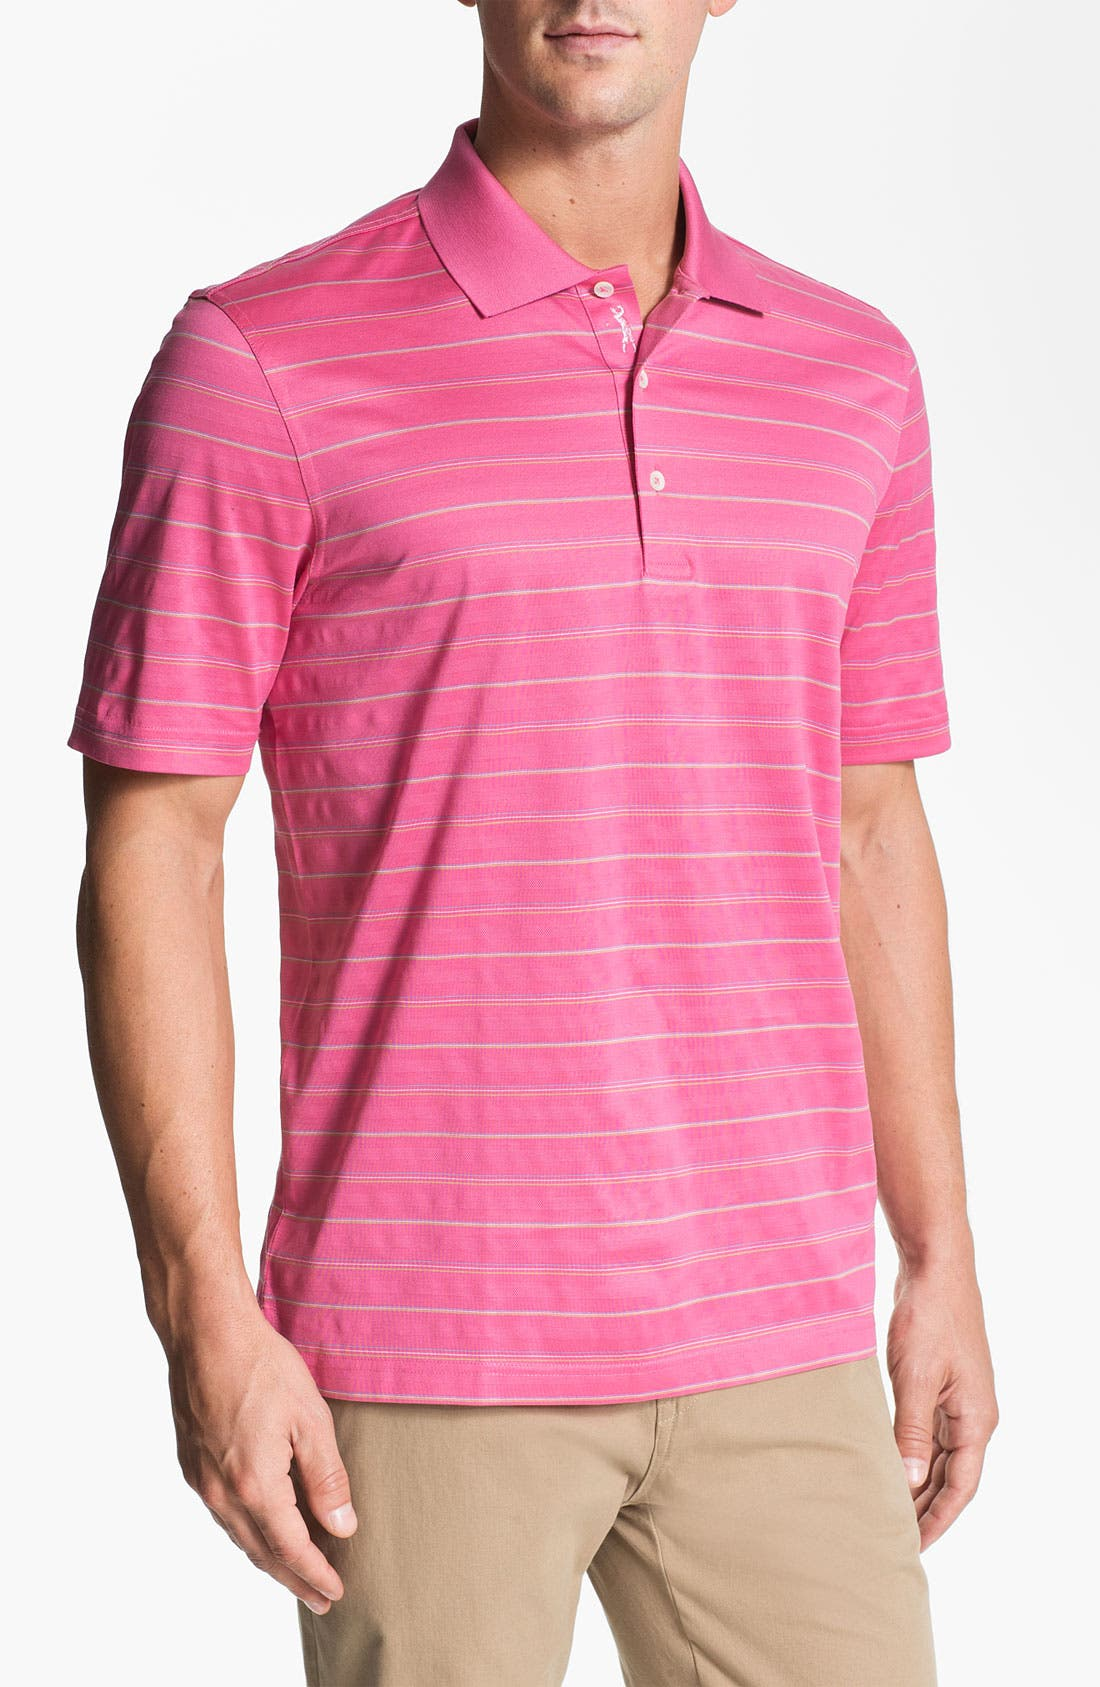 Main Image - Bobby Jones 'Textured Stripe' Golf Polo